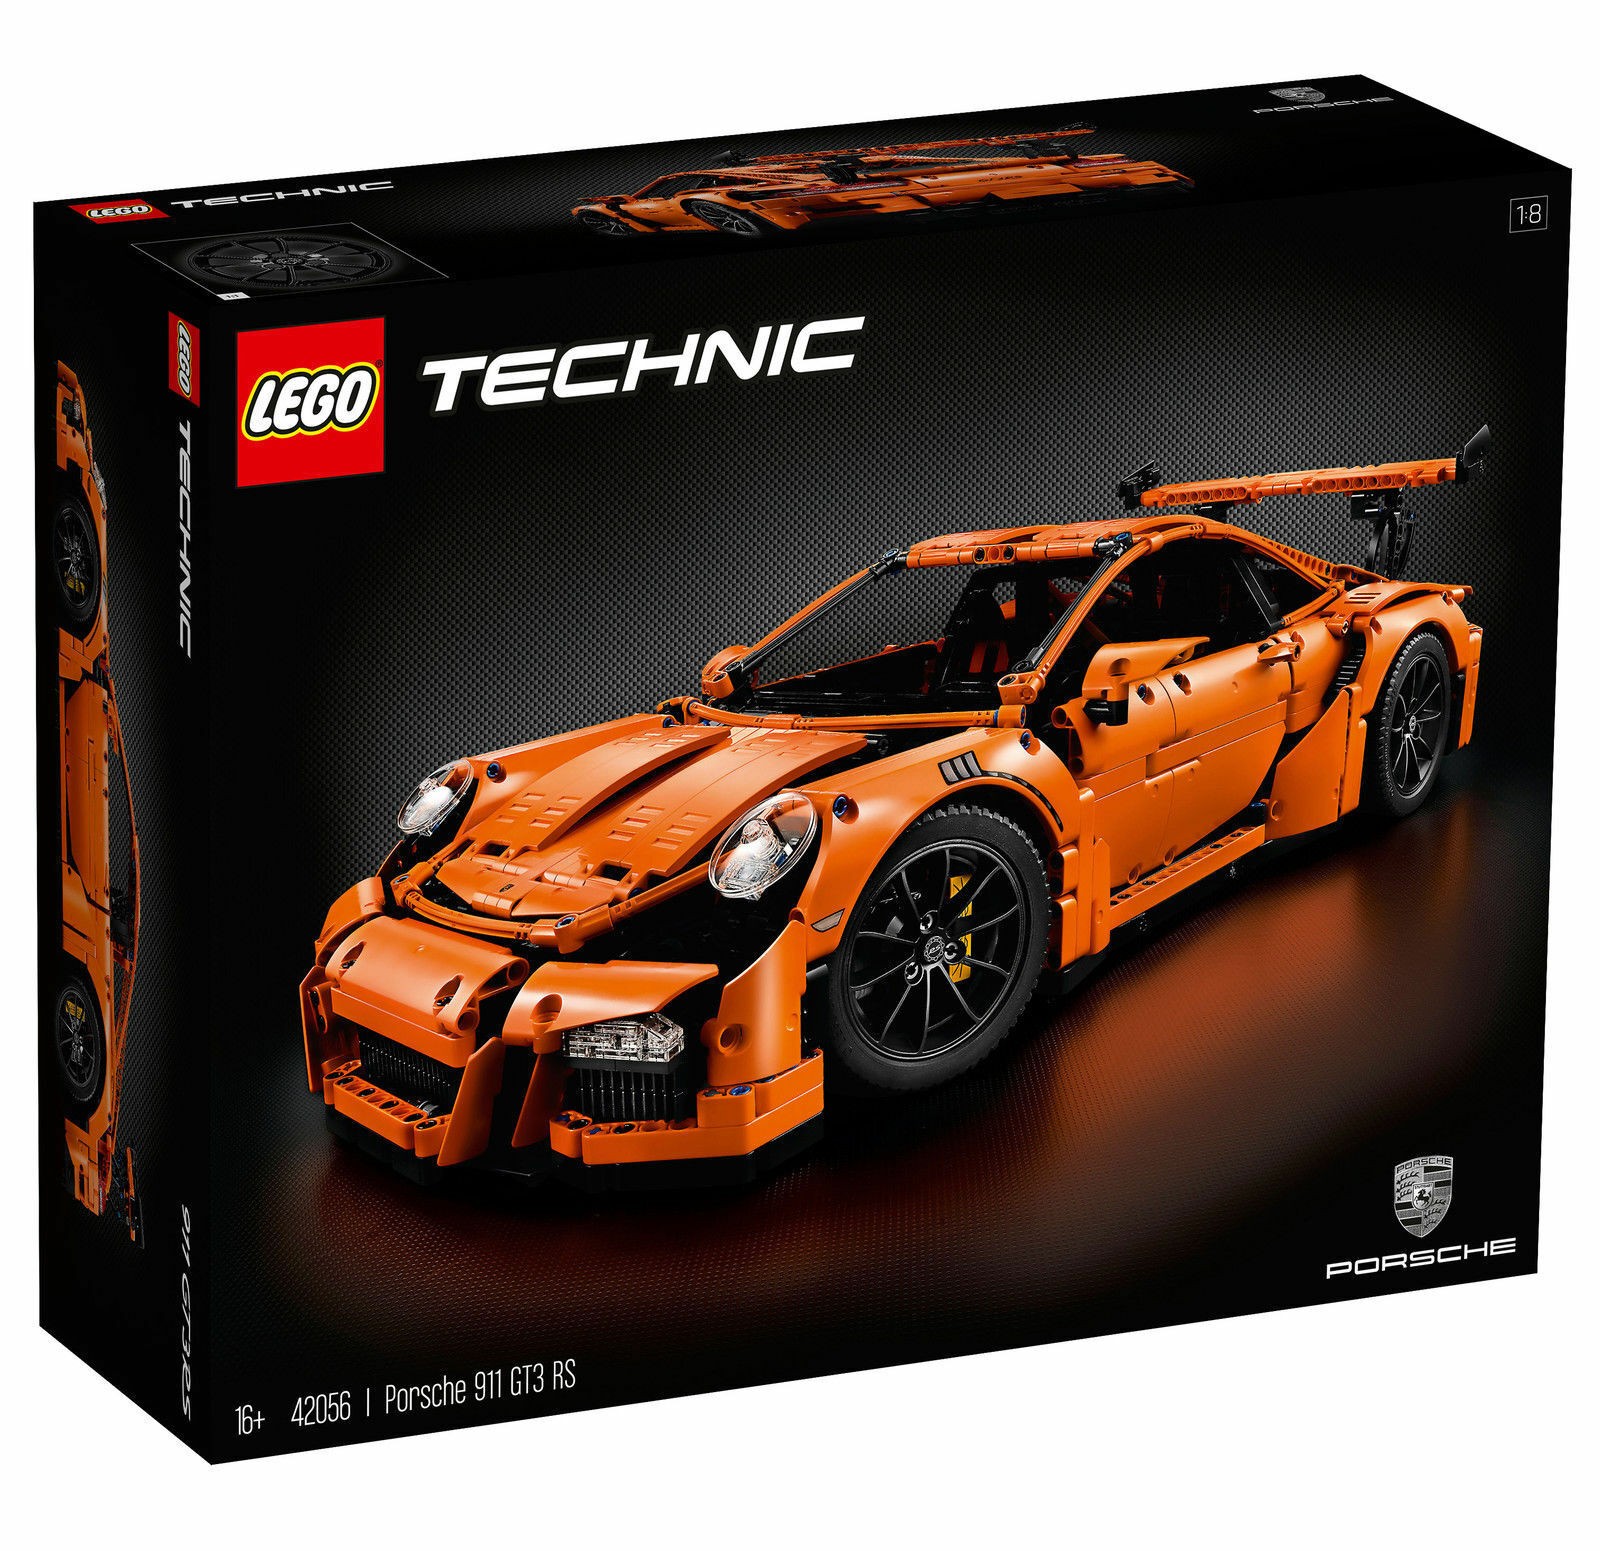 Building Set LEGO 42056 Technic Porsche 911 911 911 GT3 RS Moving Pistons - MINT-Sealed 11ff69